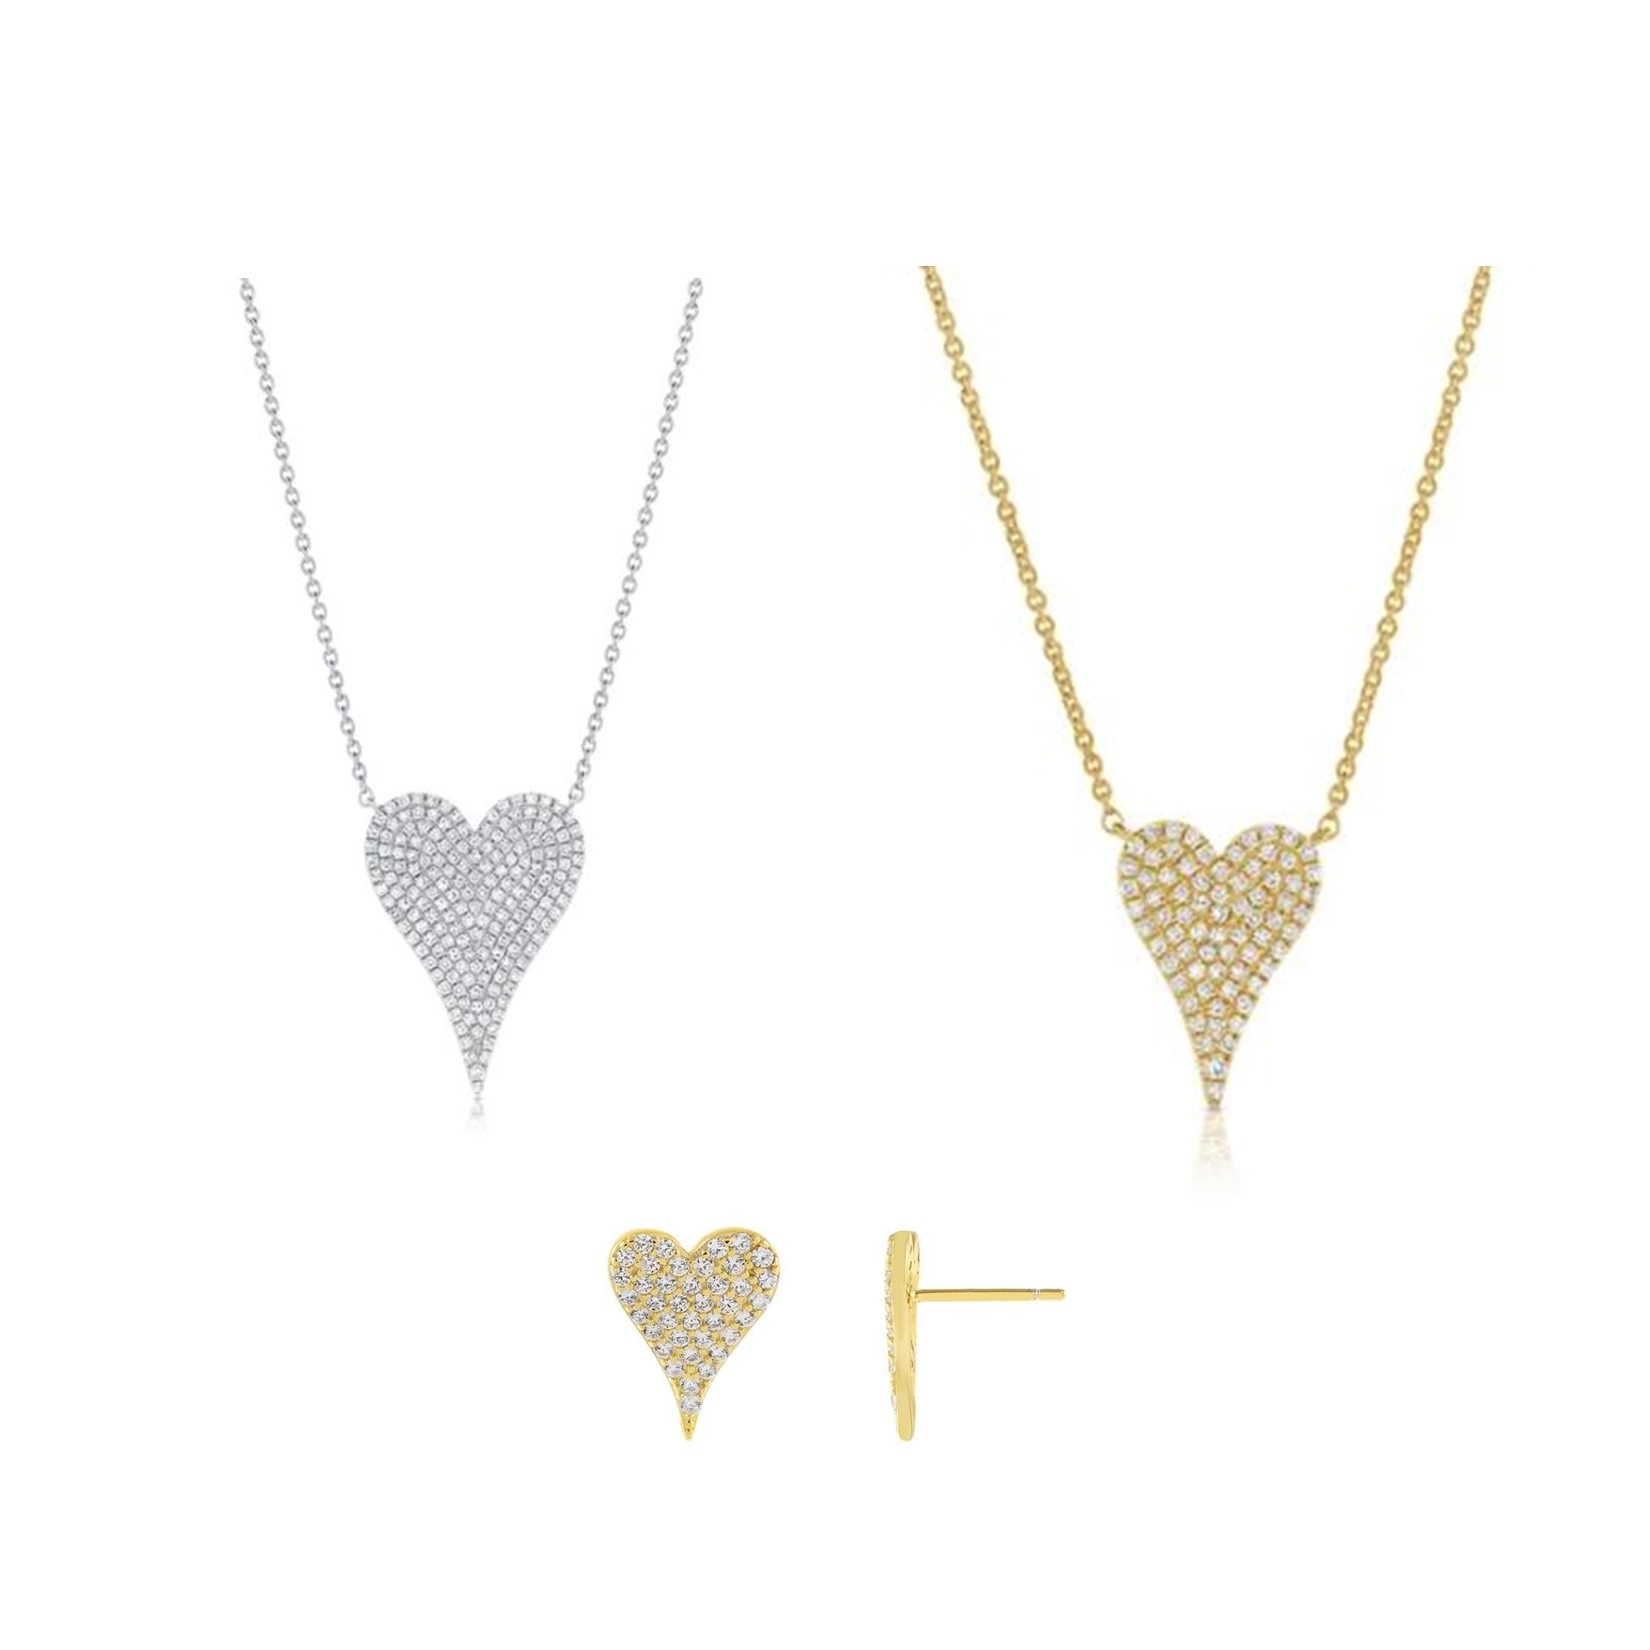 Pave CZ Elongated Heart Jewelry Collection